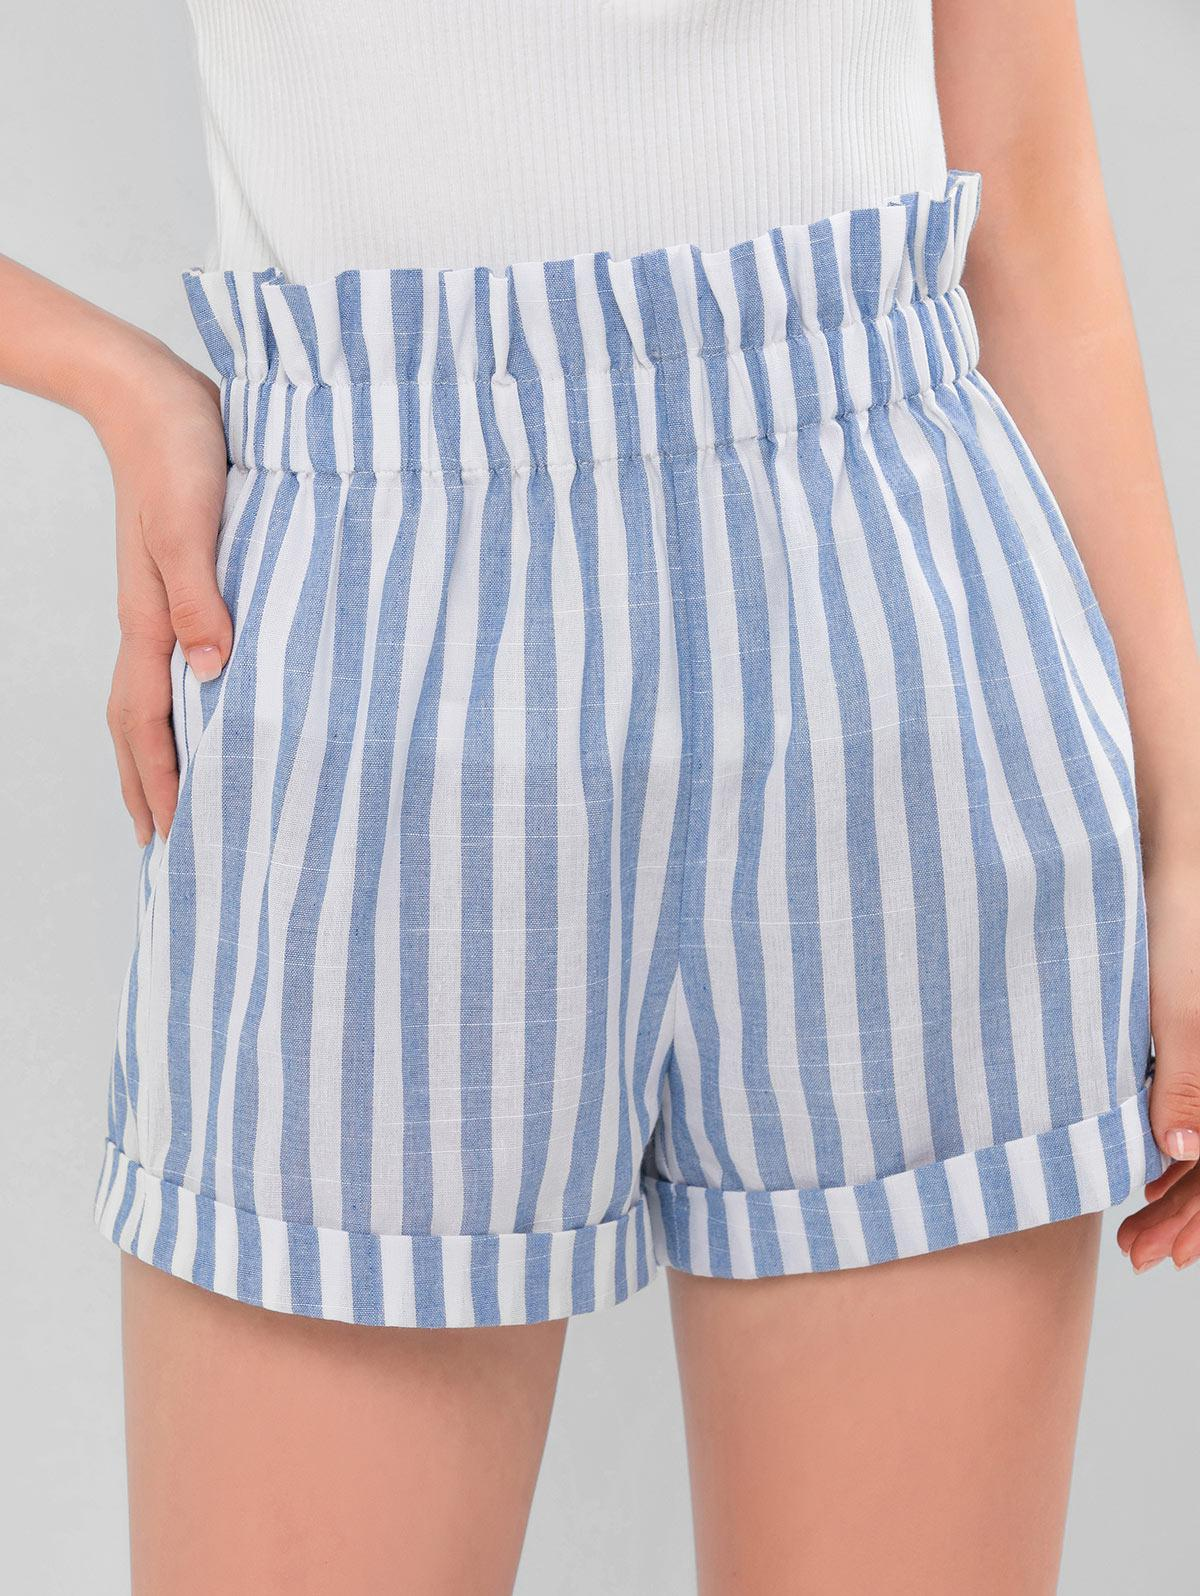 ZAFUL Two Tone Striped Paperbag Shorts